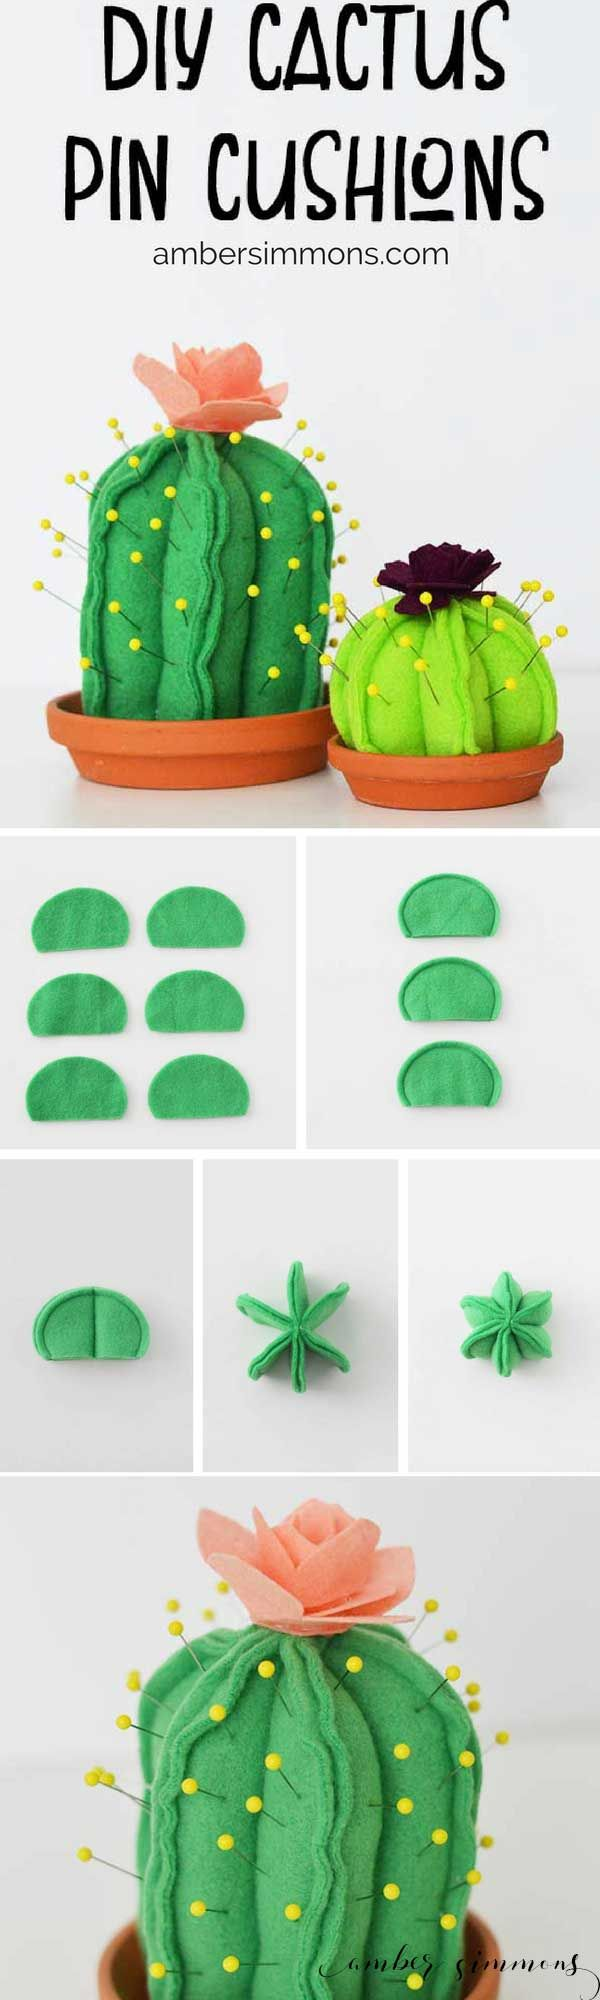 This super cute DIY Cactus Pin Cushion is so simple to make even a beginning sewer can make one. And with the Cricut Maker pattern, cutting them out is a breeze. | ambersimmons.com | #girlsnight #sewing #cacti #succulents #fleece